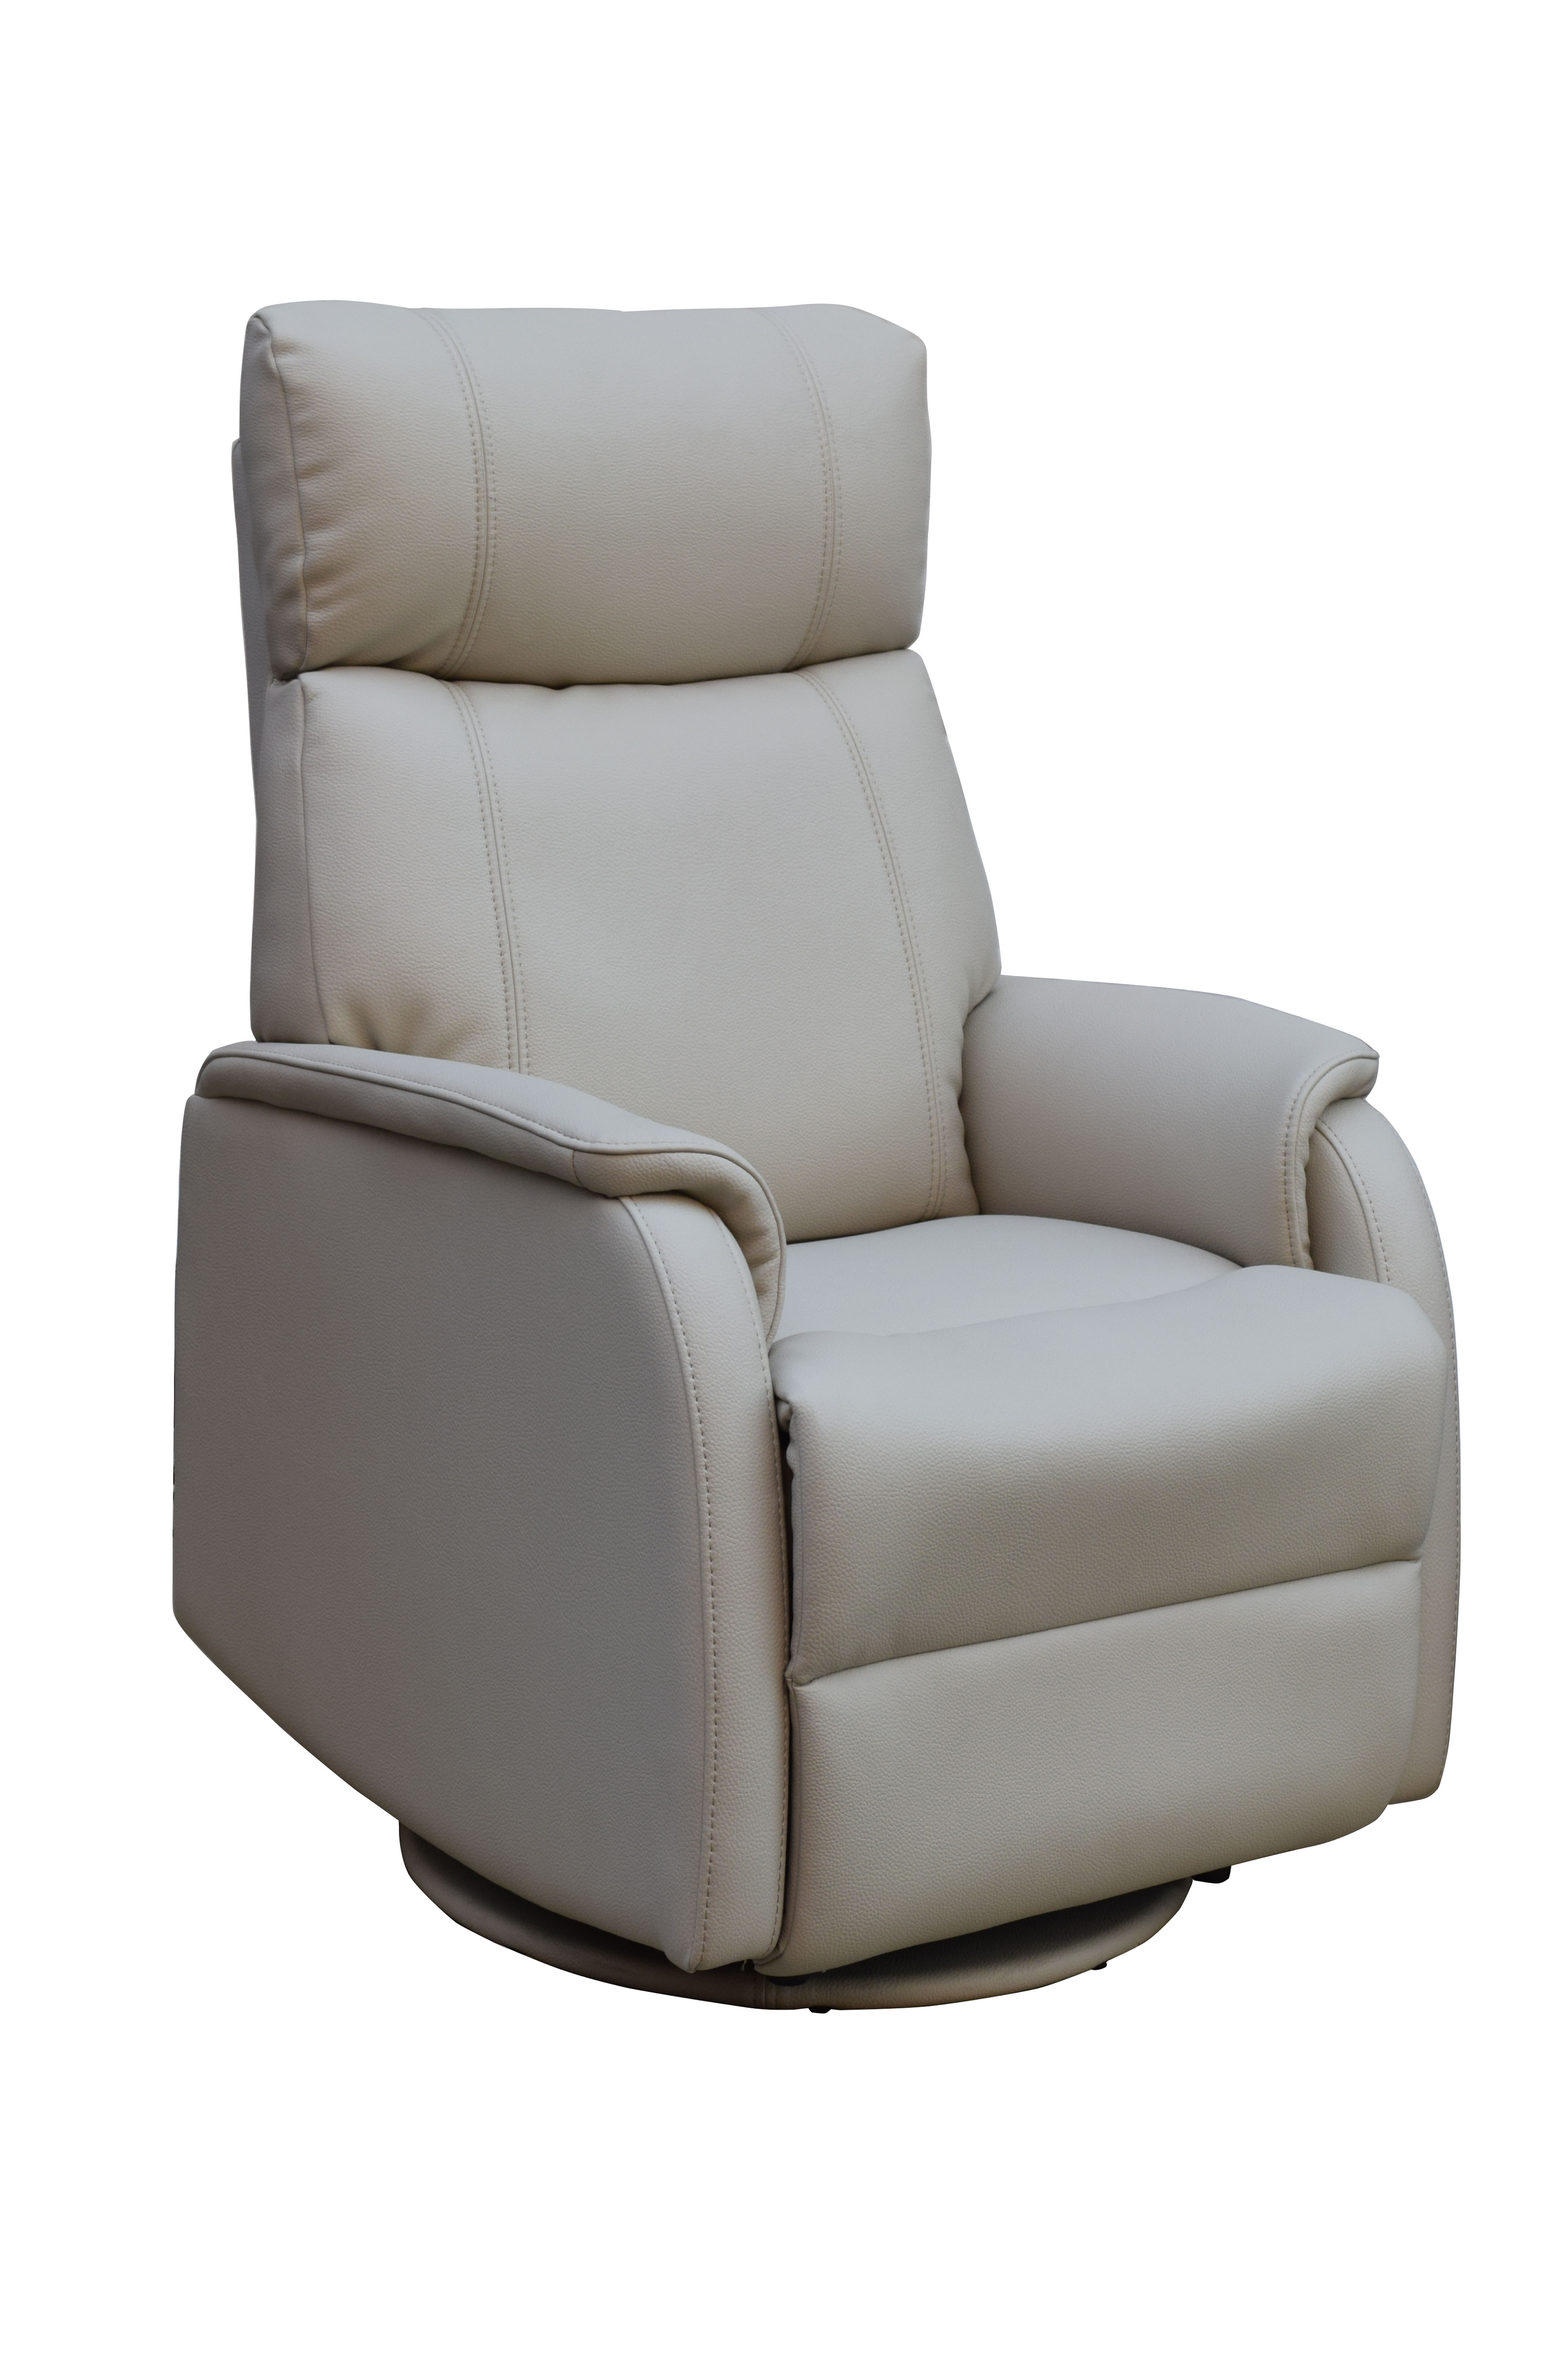 GFA Positano Electric Swivel Leather Recliner Chair Bone